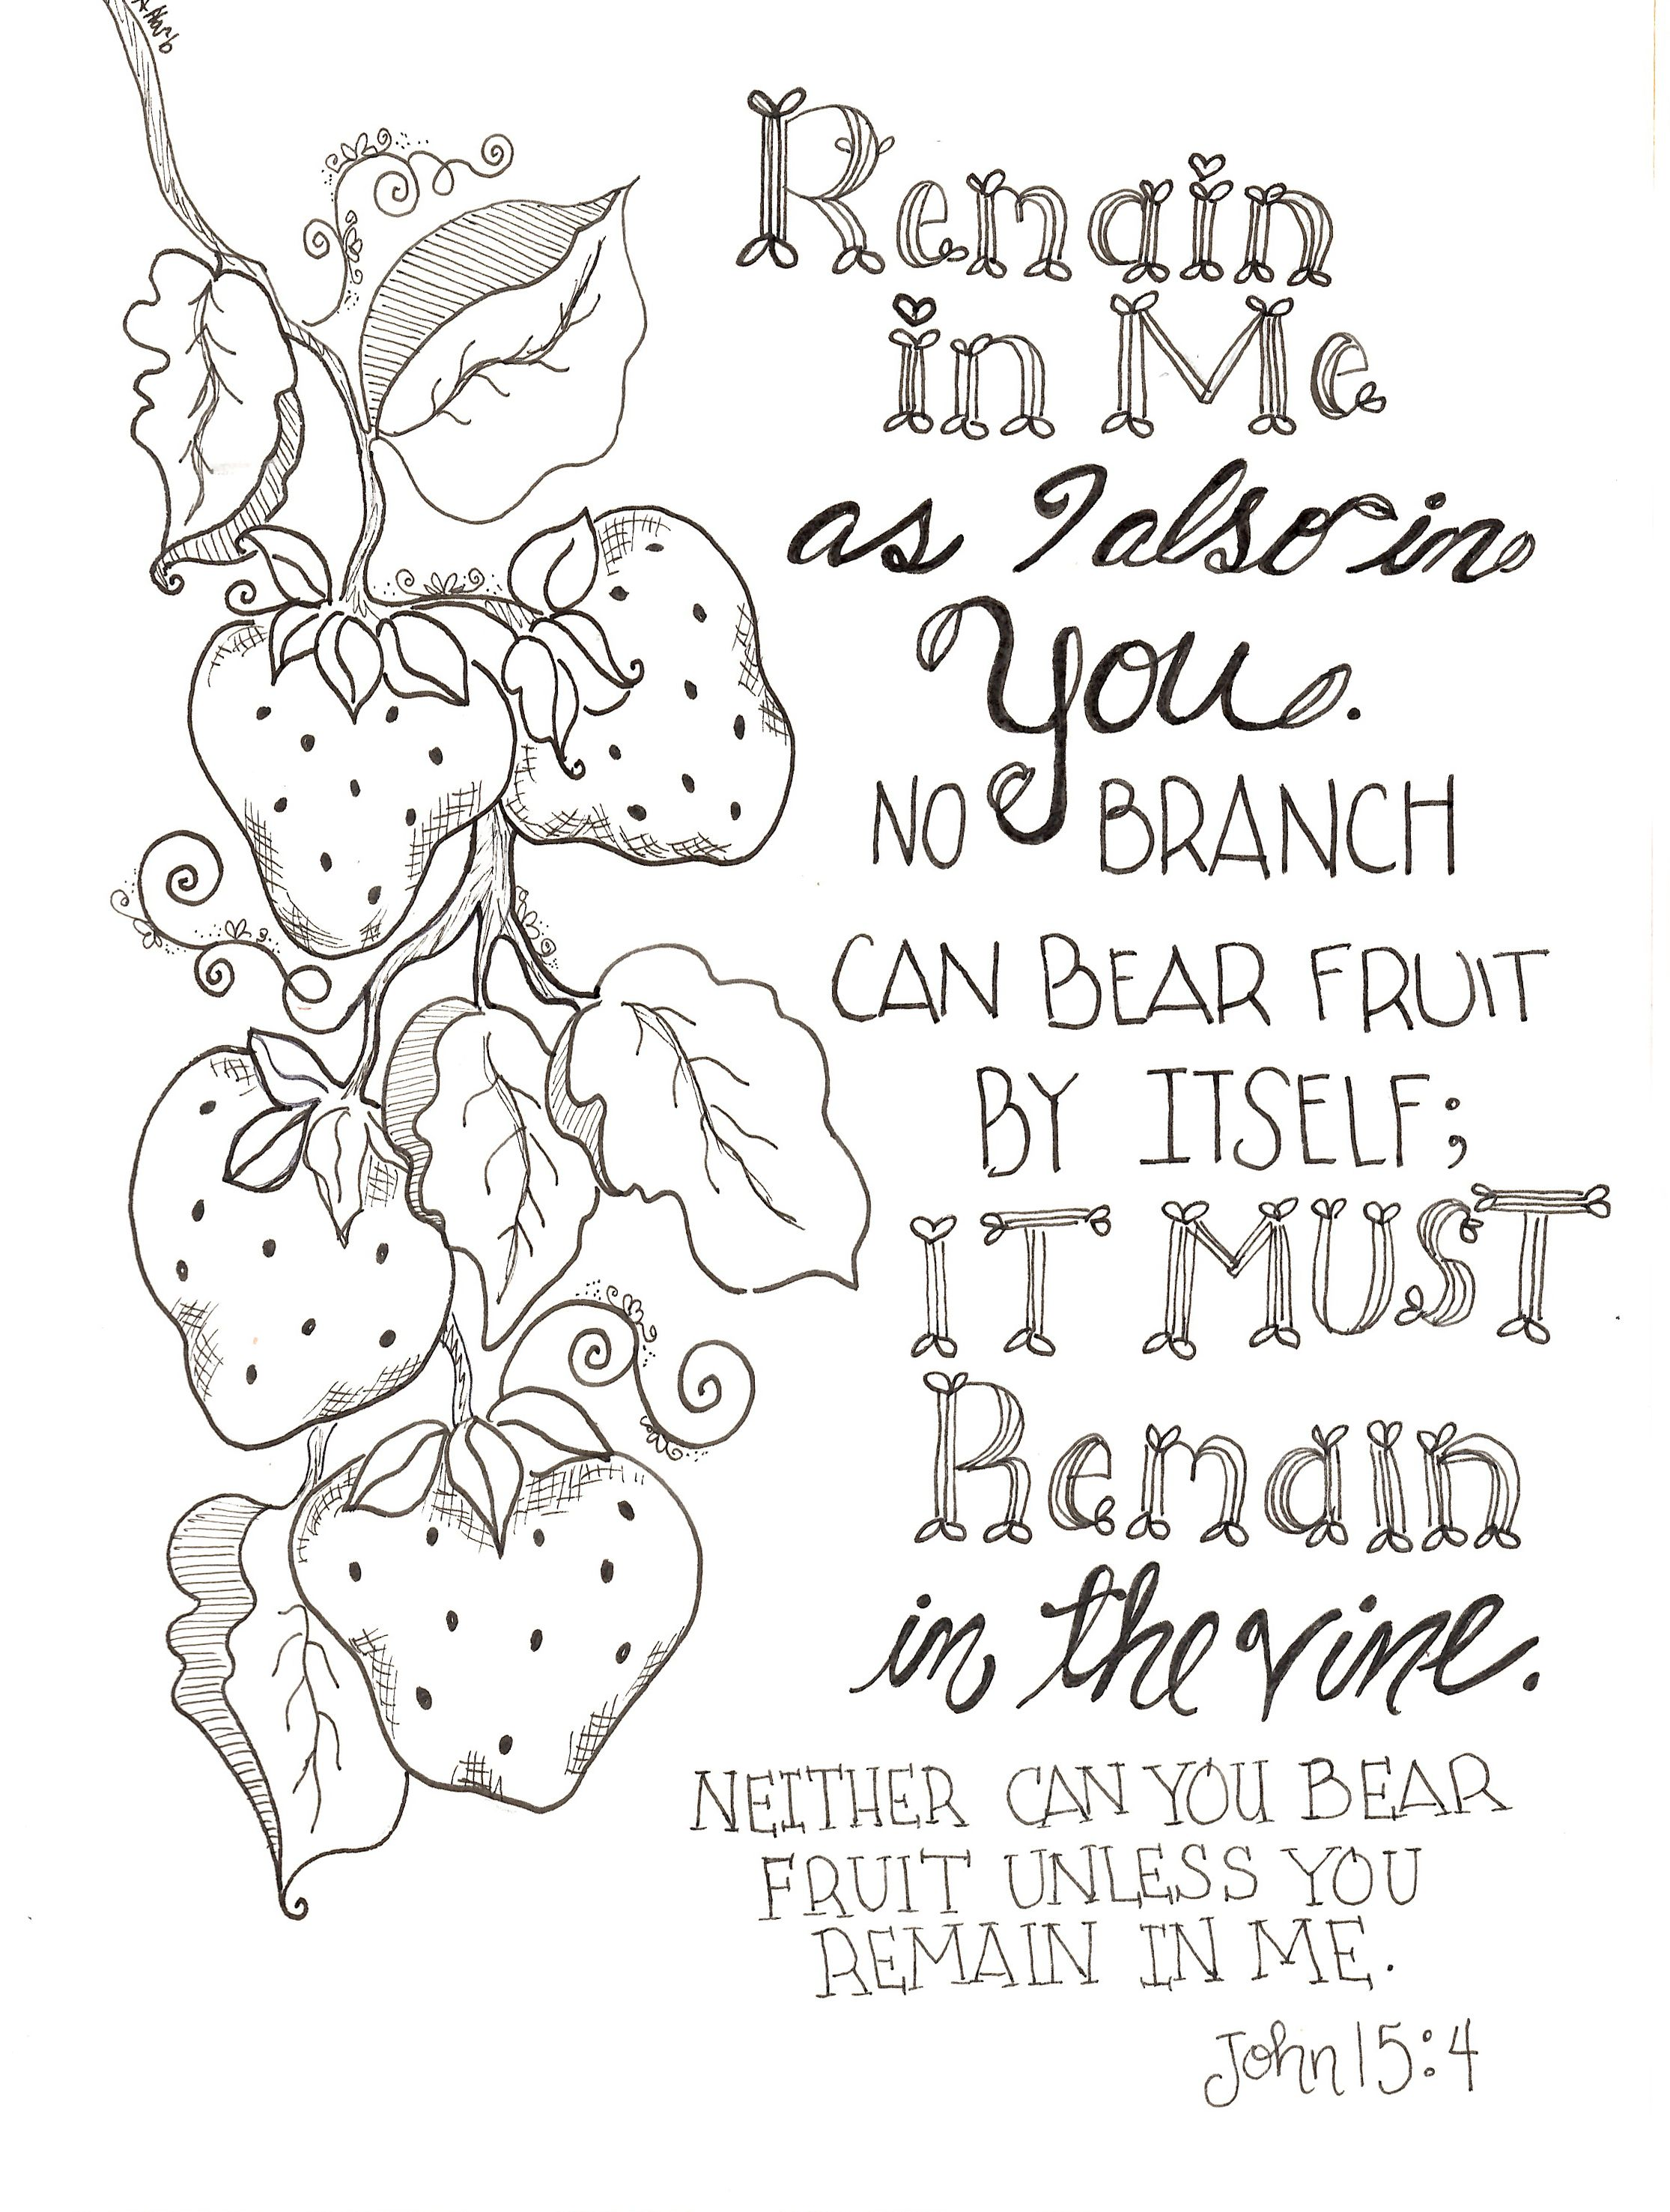 Free Inspirational Remain In Me Scripture Coloring Pages Printable 8x10 Sundayschool Color And